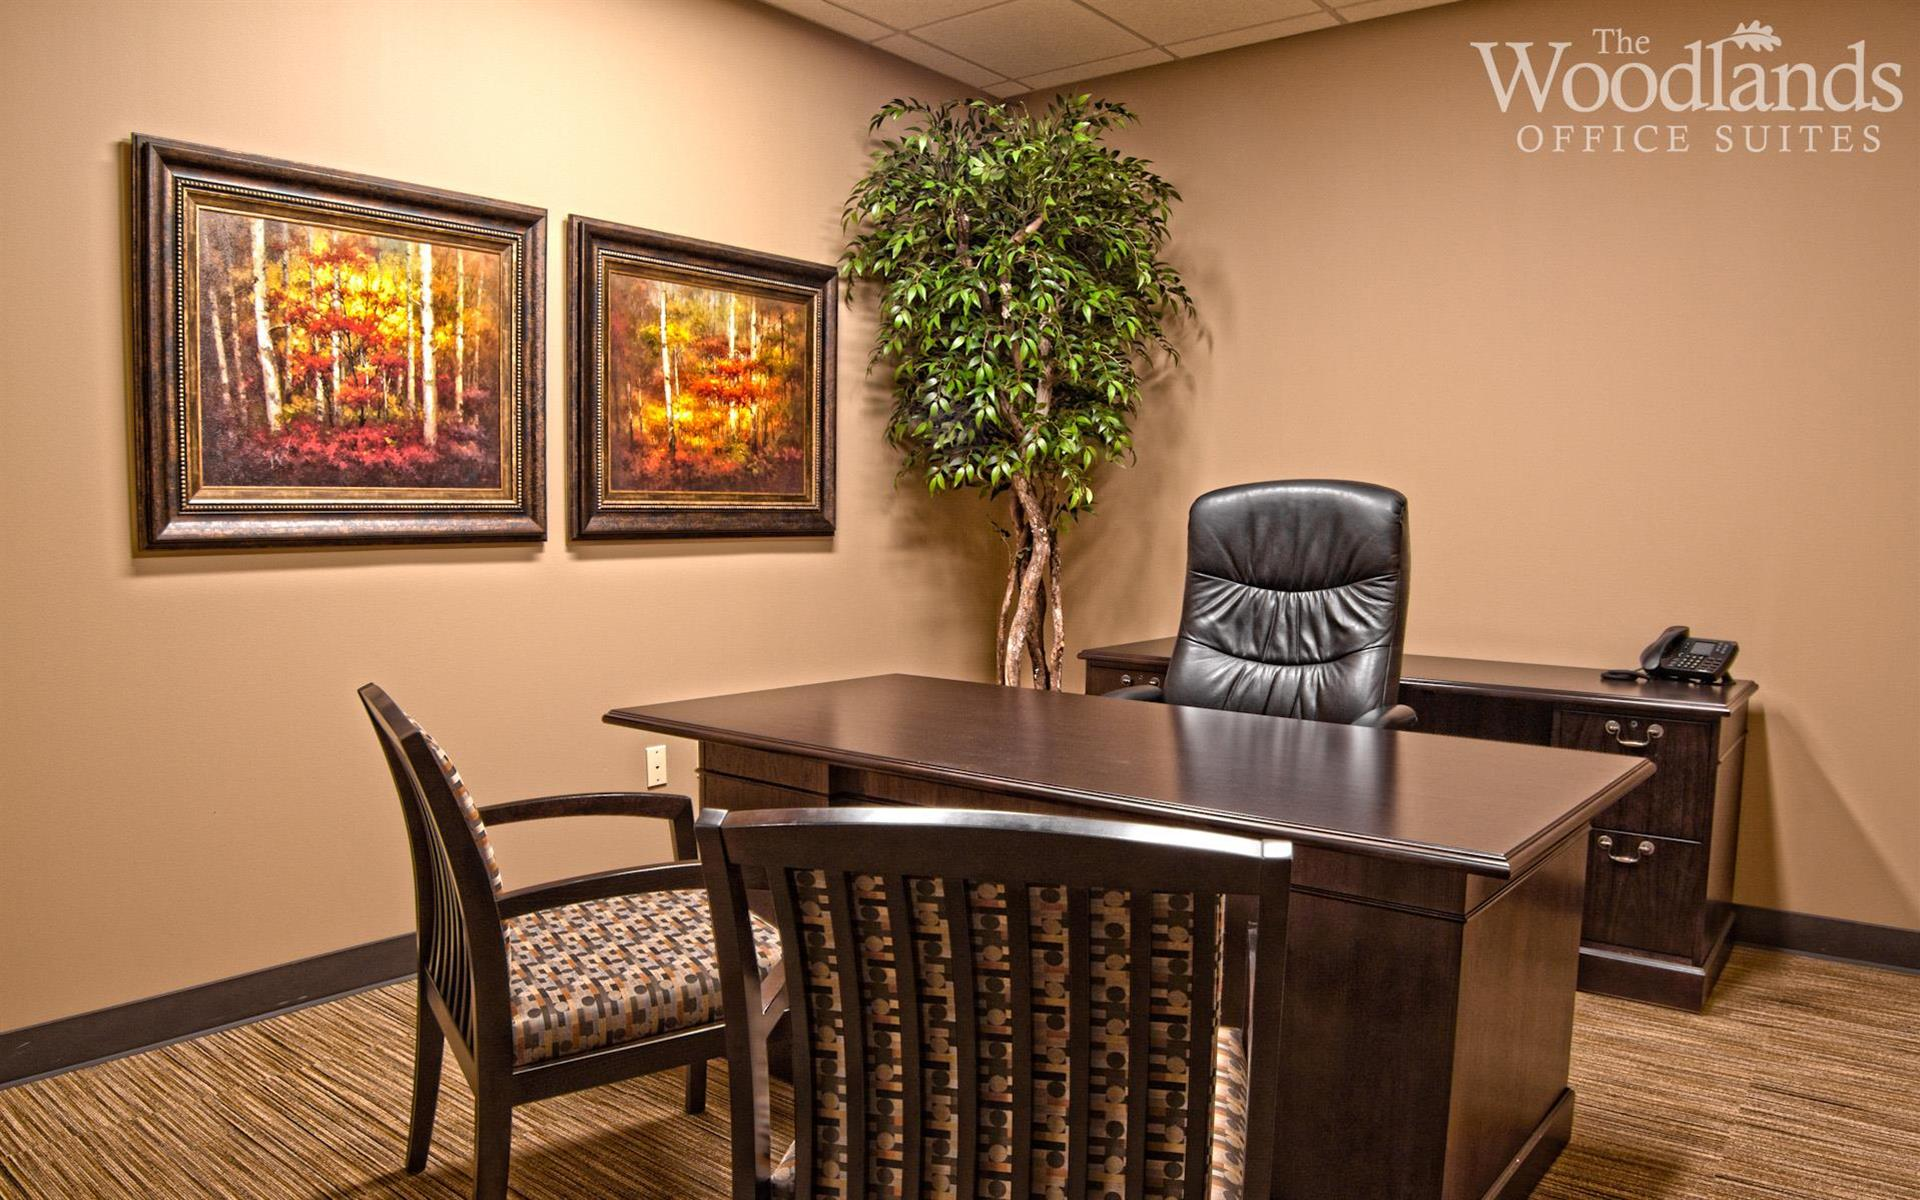 The Woodlands Office Suites - Suite #255 - Large Interior Office